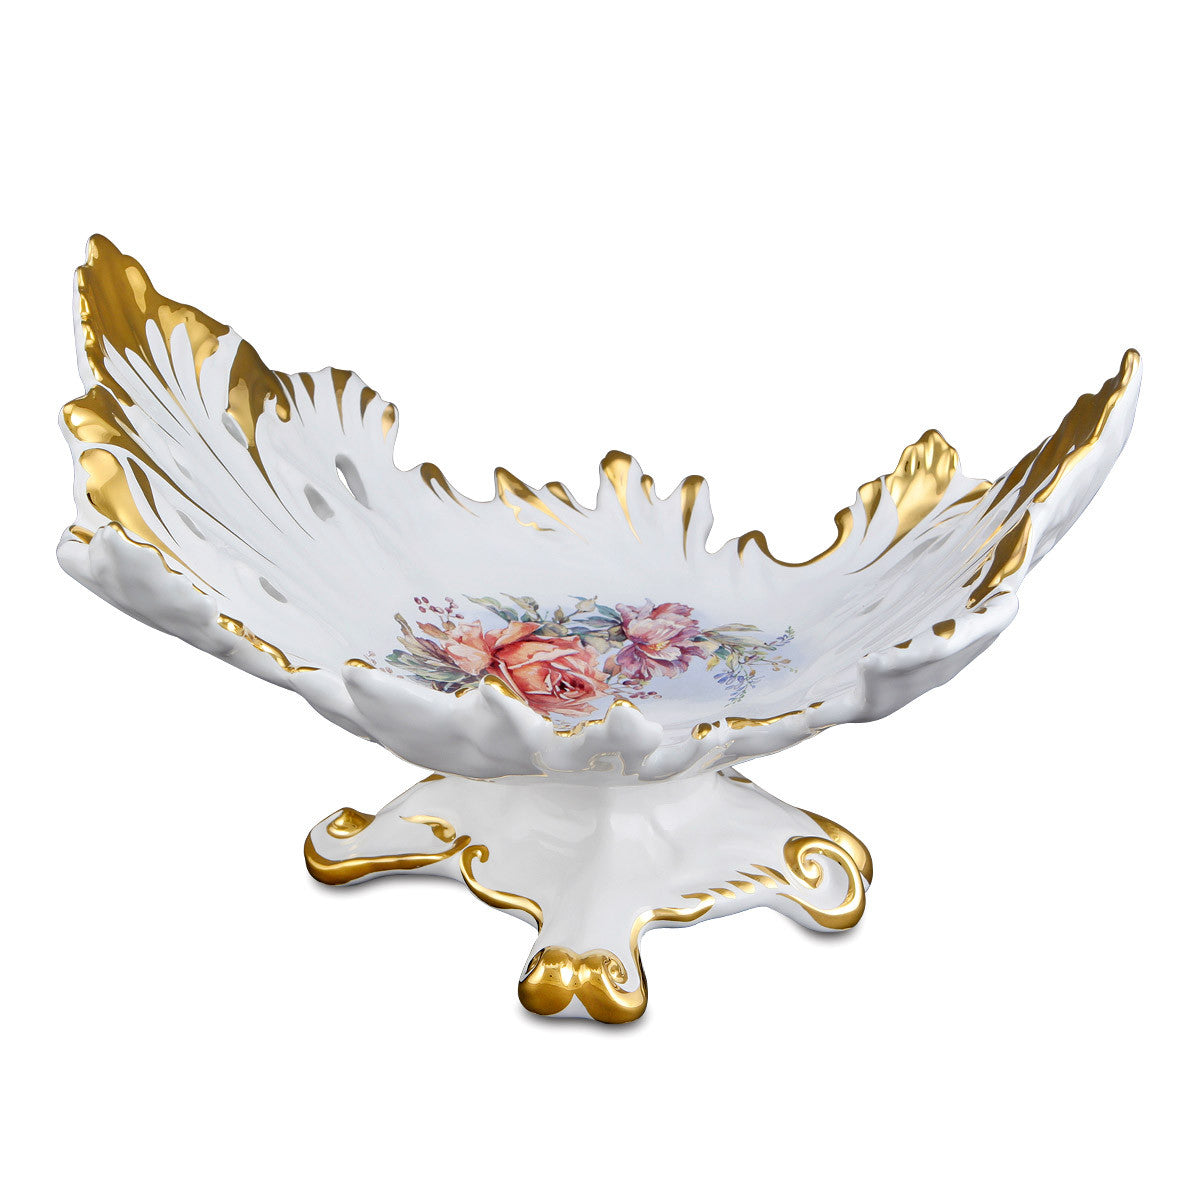 Ceramic Baroque centerpiece - Classic Tableware